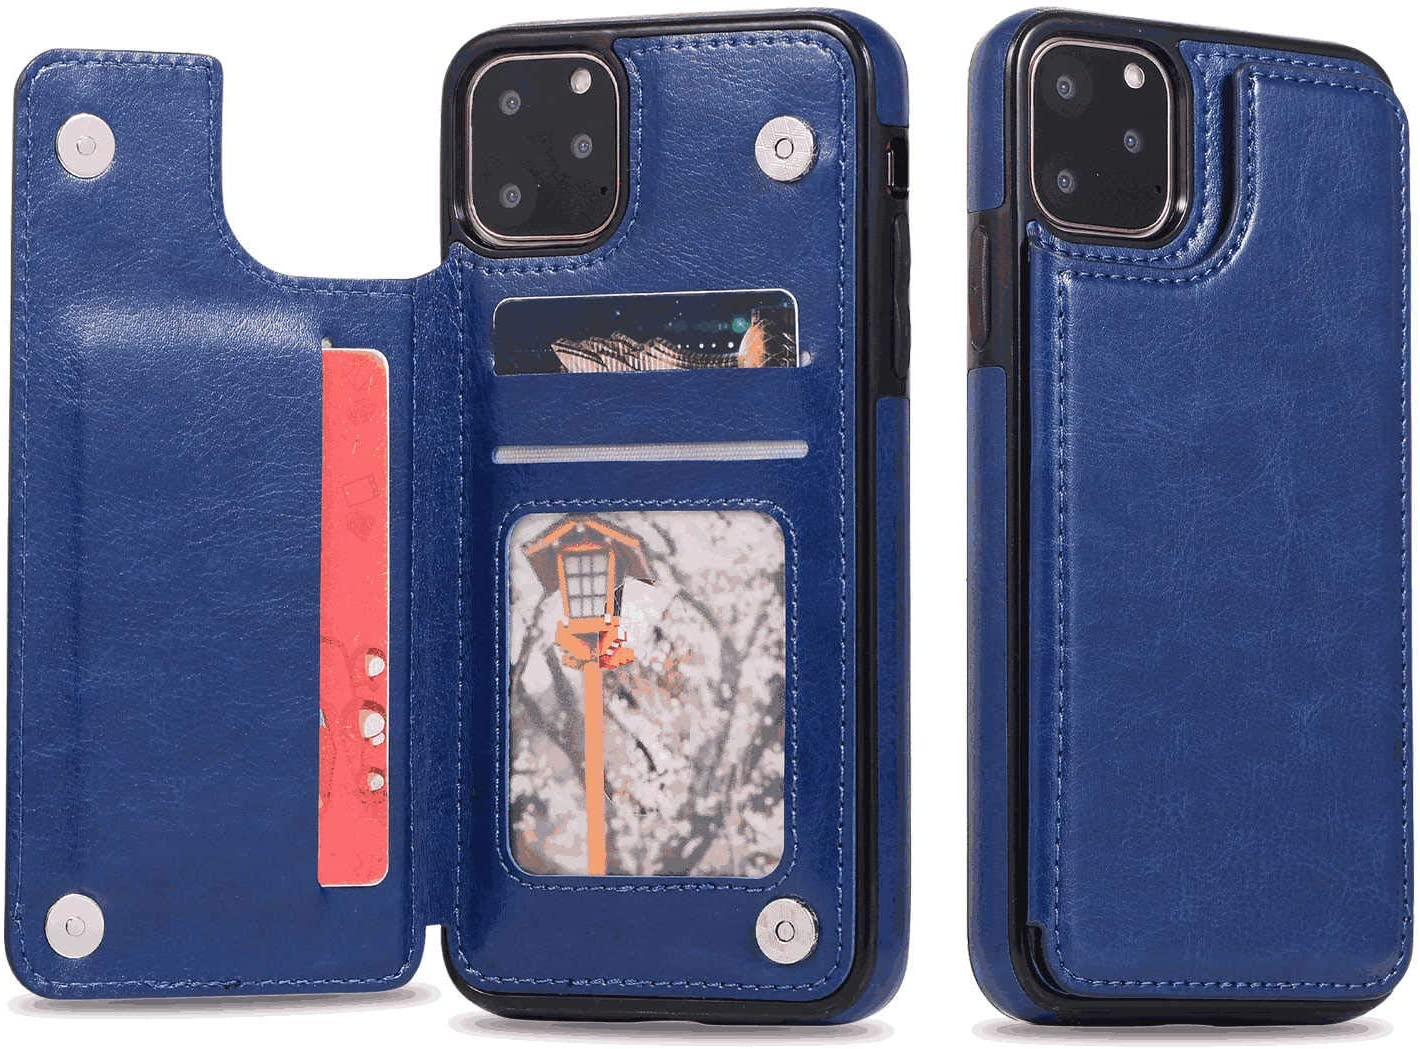 Cover for Leather Card Holders Extra-Shockproof Business Kickstand Wallet case Flip Cover Samsung Galaxy S10 Flip Case